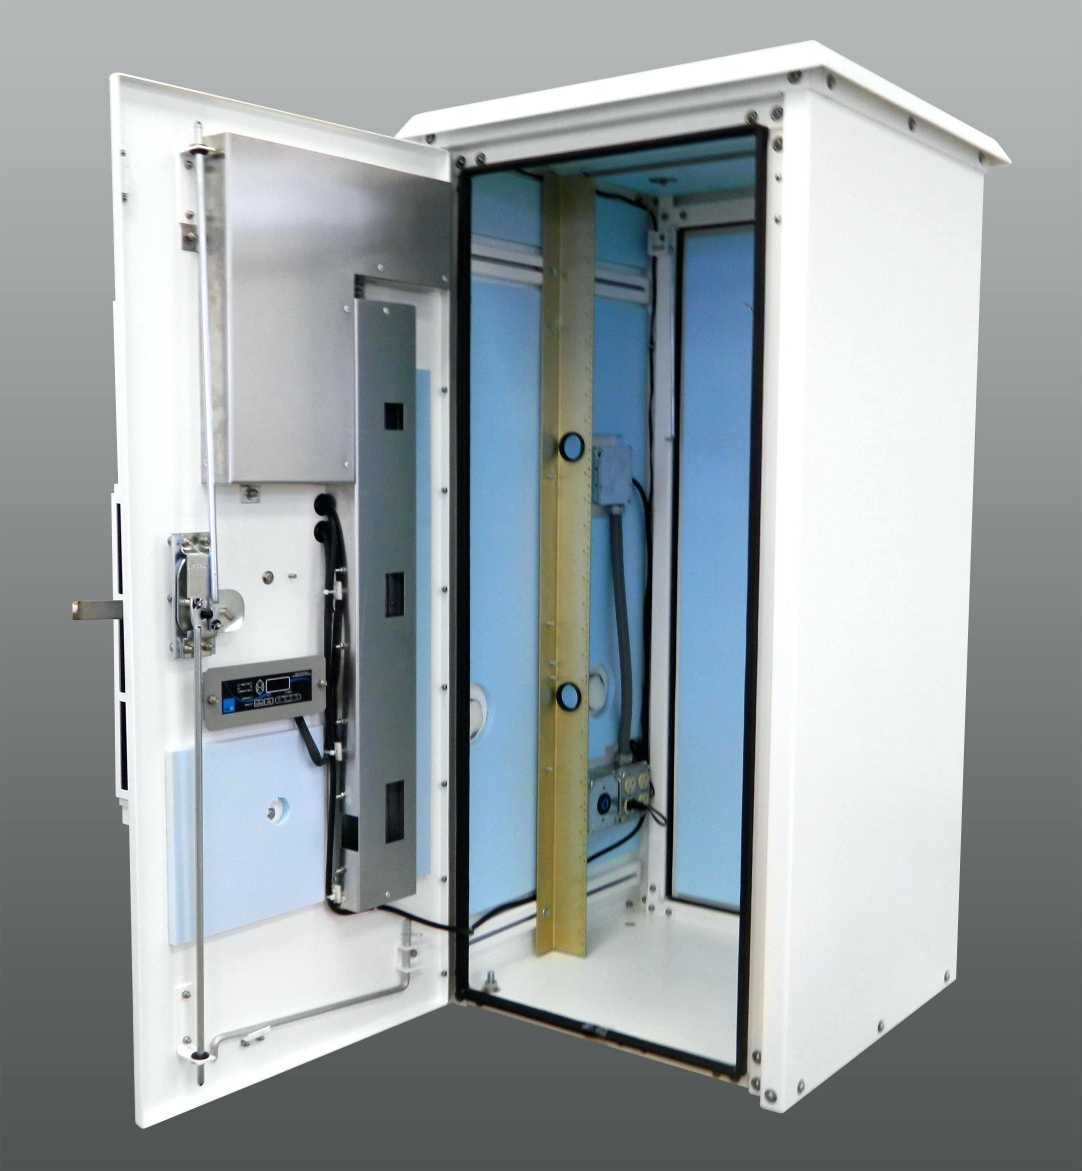 Outdoor Tankless Water Heater Enclosure Outdoor Designs